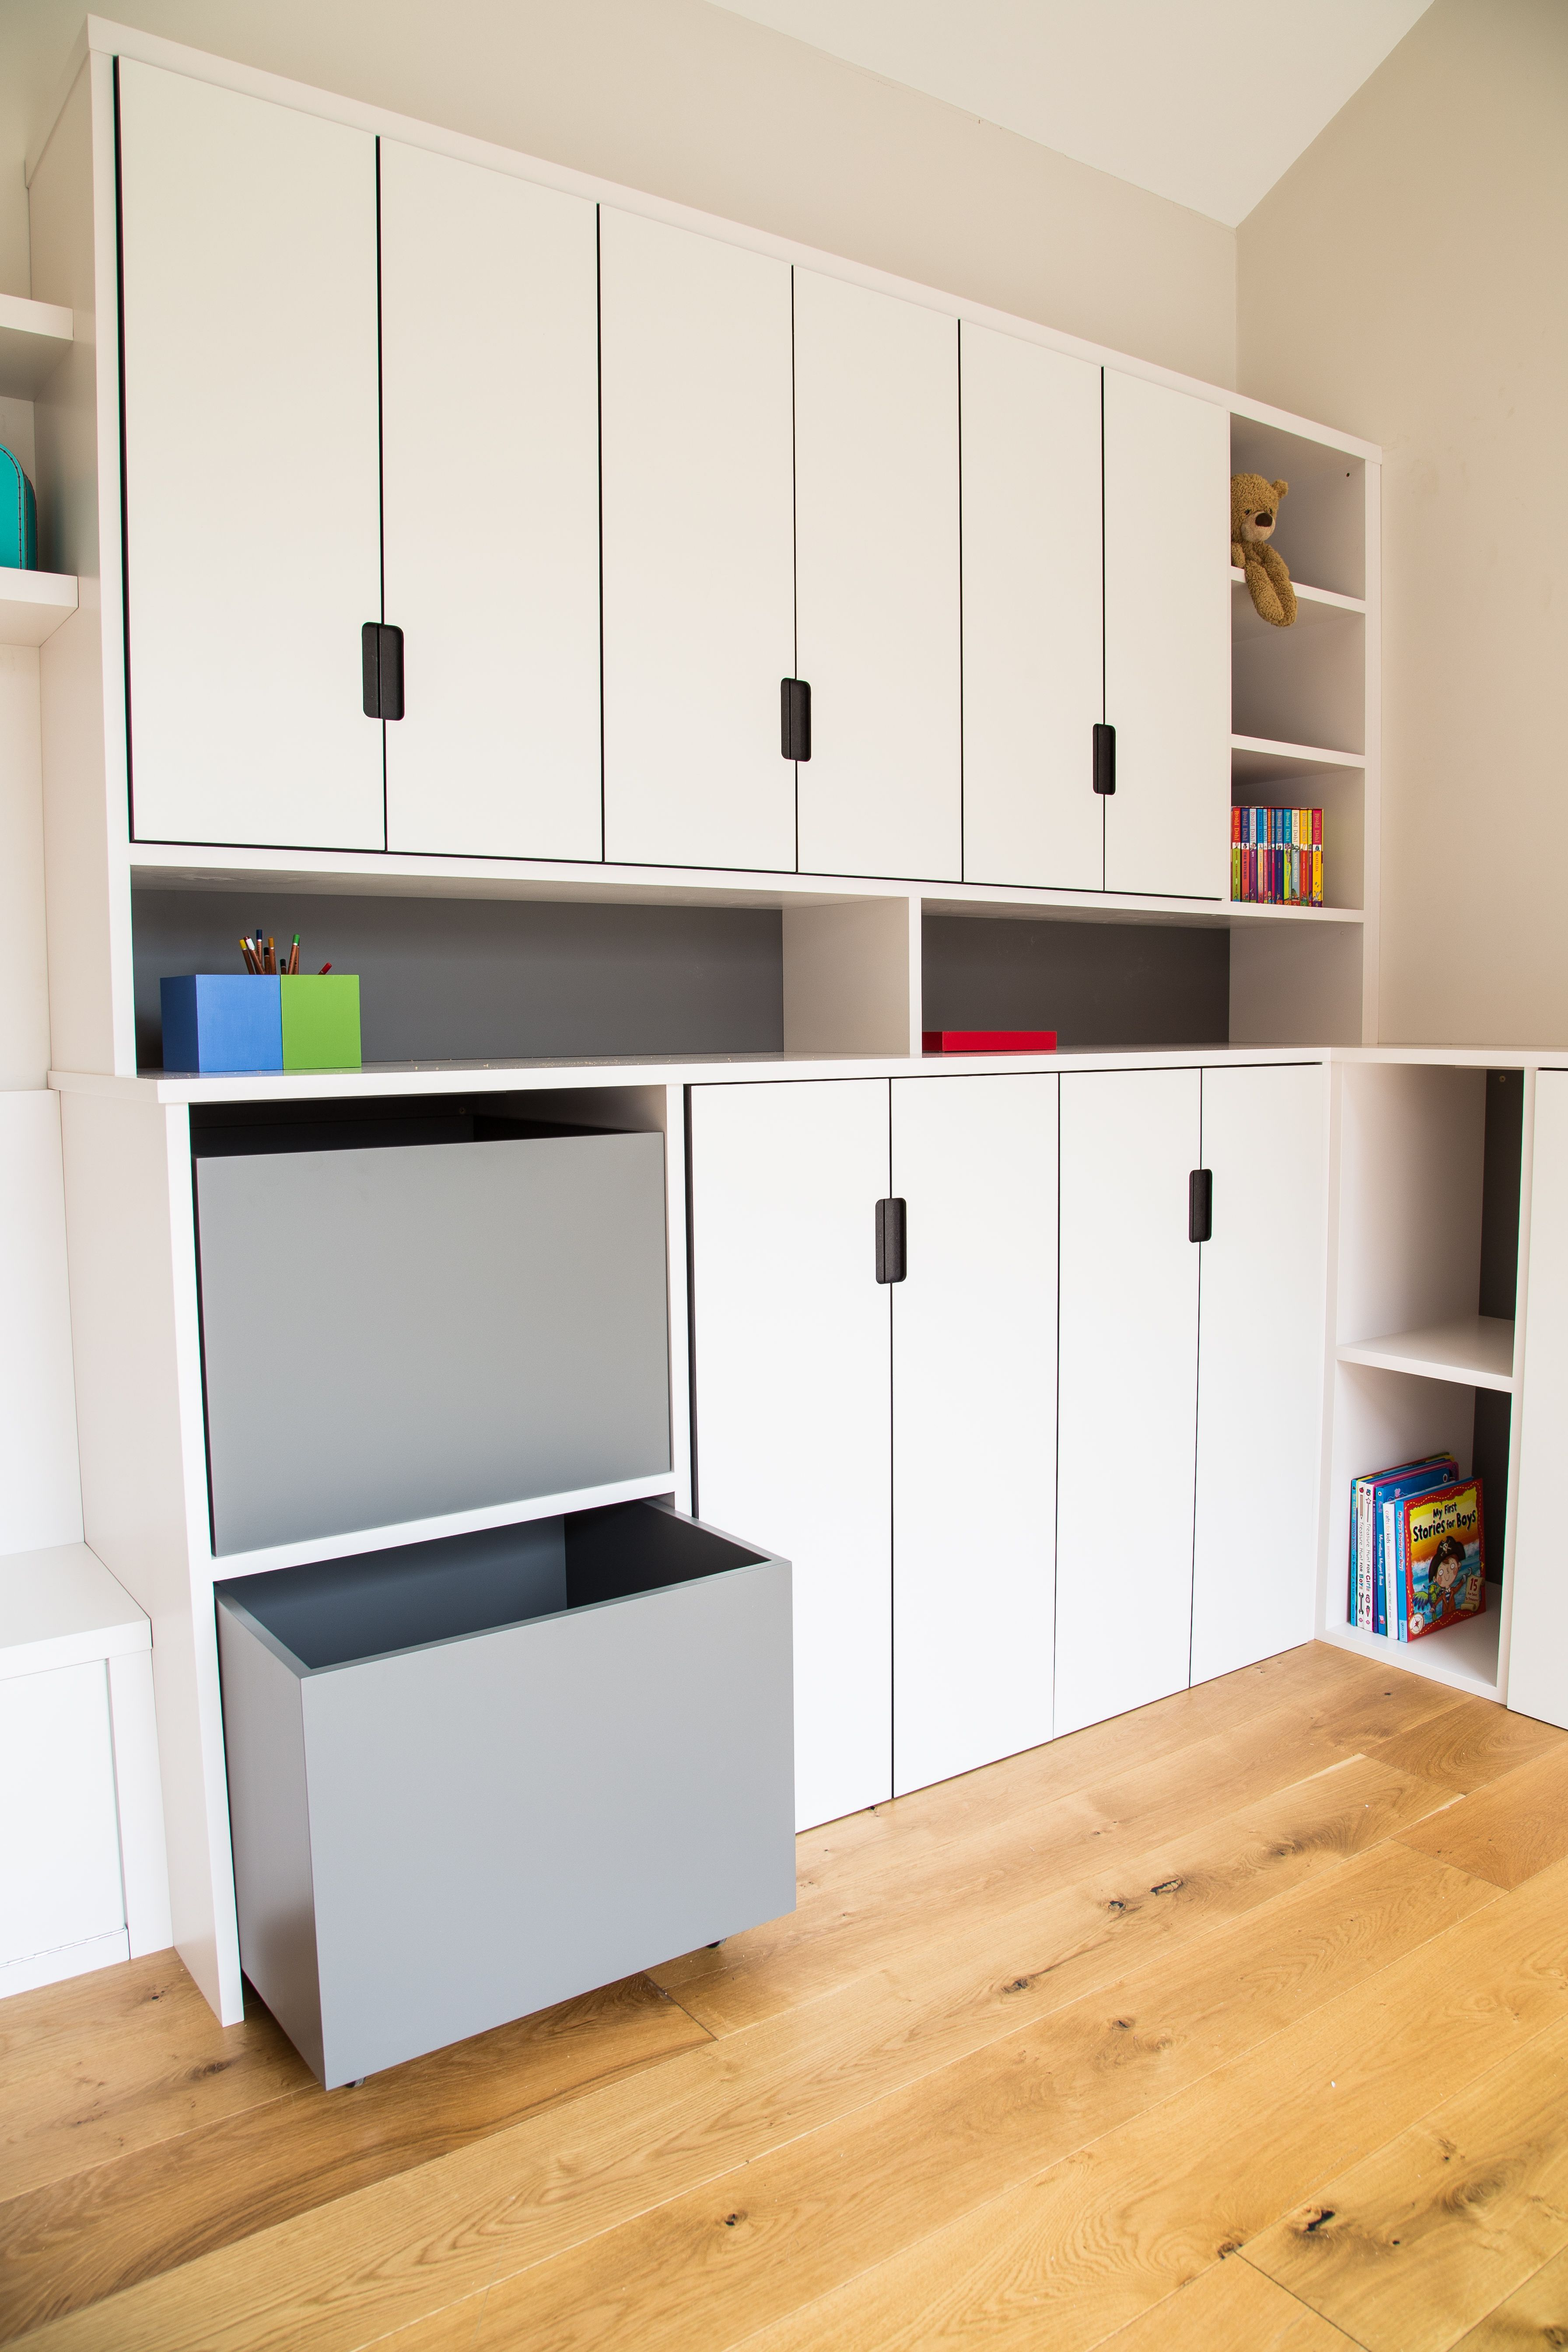 Bespoke Kids Playroom With Toy Boxes Open Shelving Cupboards And Seating Painted In F B Strong Kids Playroom Furniture Cupboard Storage Playroom Furniture